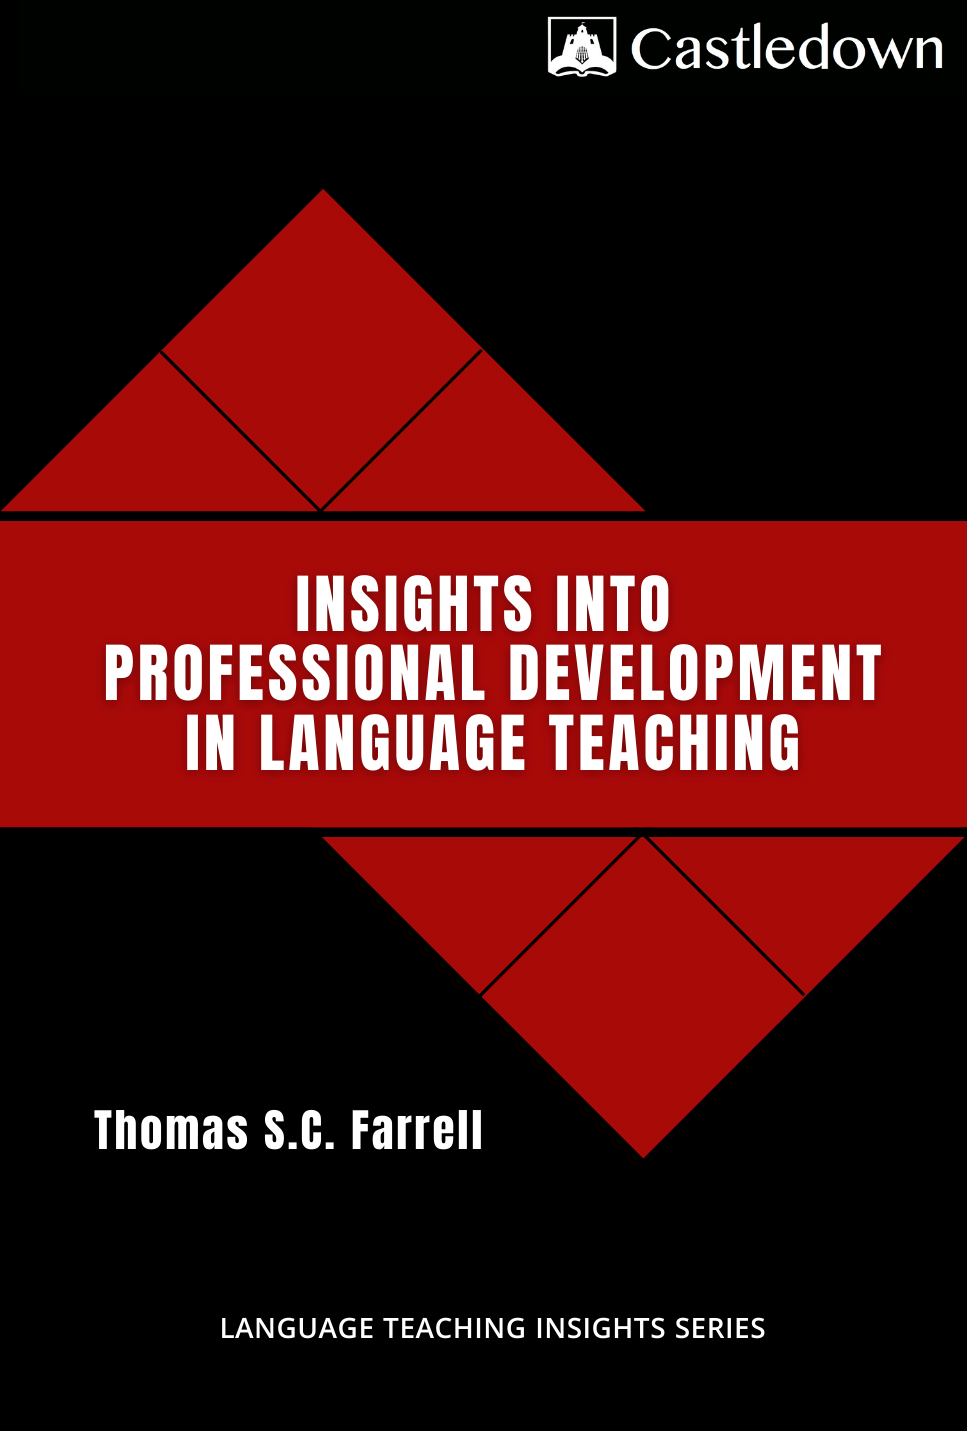 Insights into professional development in language teaching